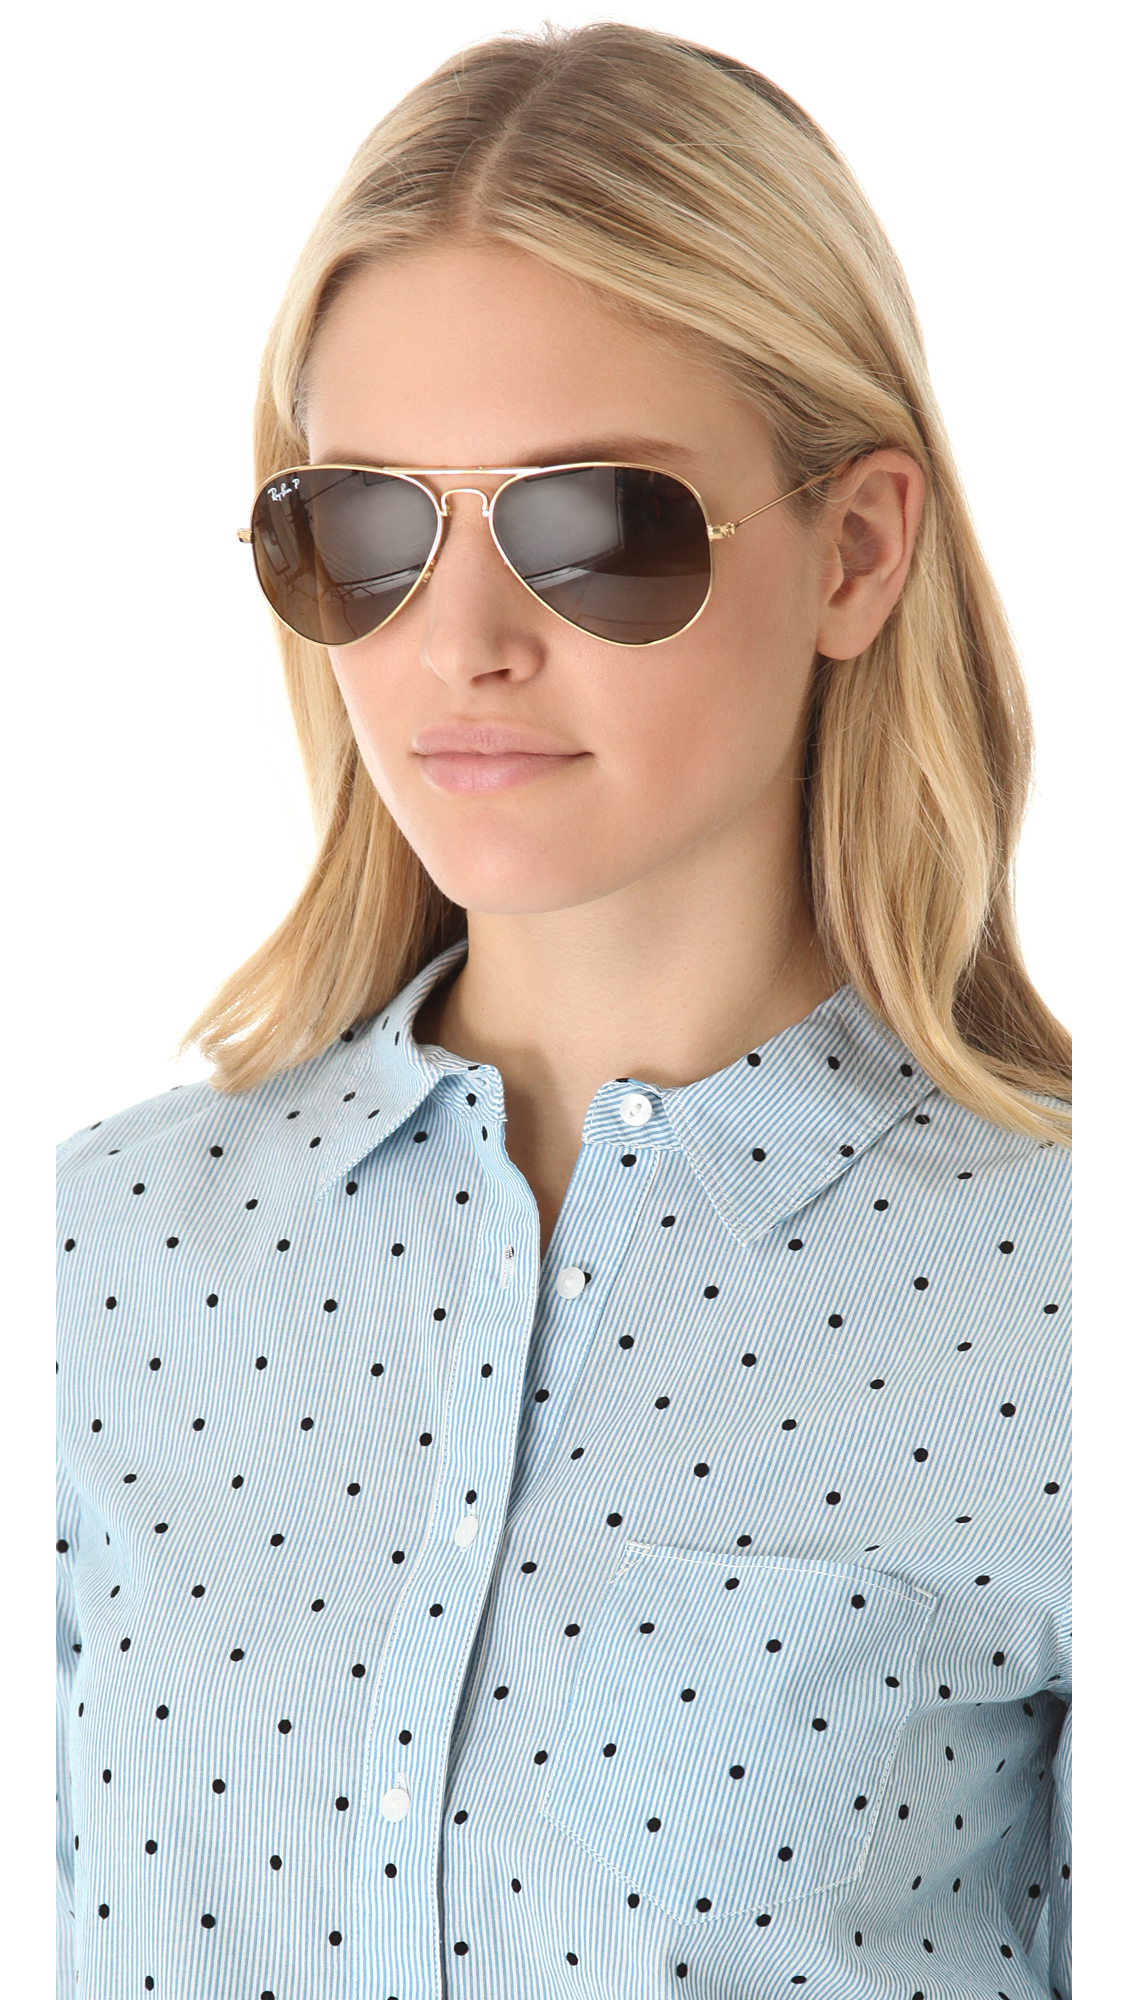 ray ban aviators polarized women's